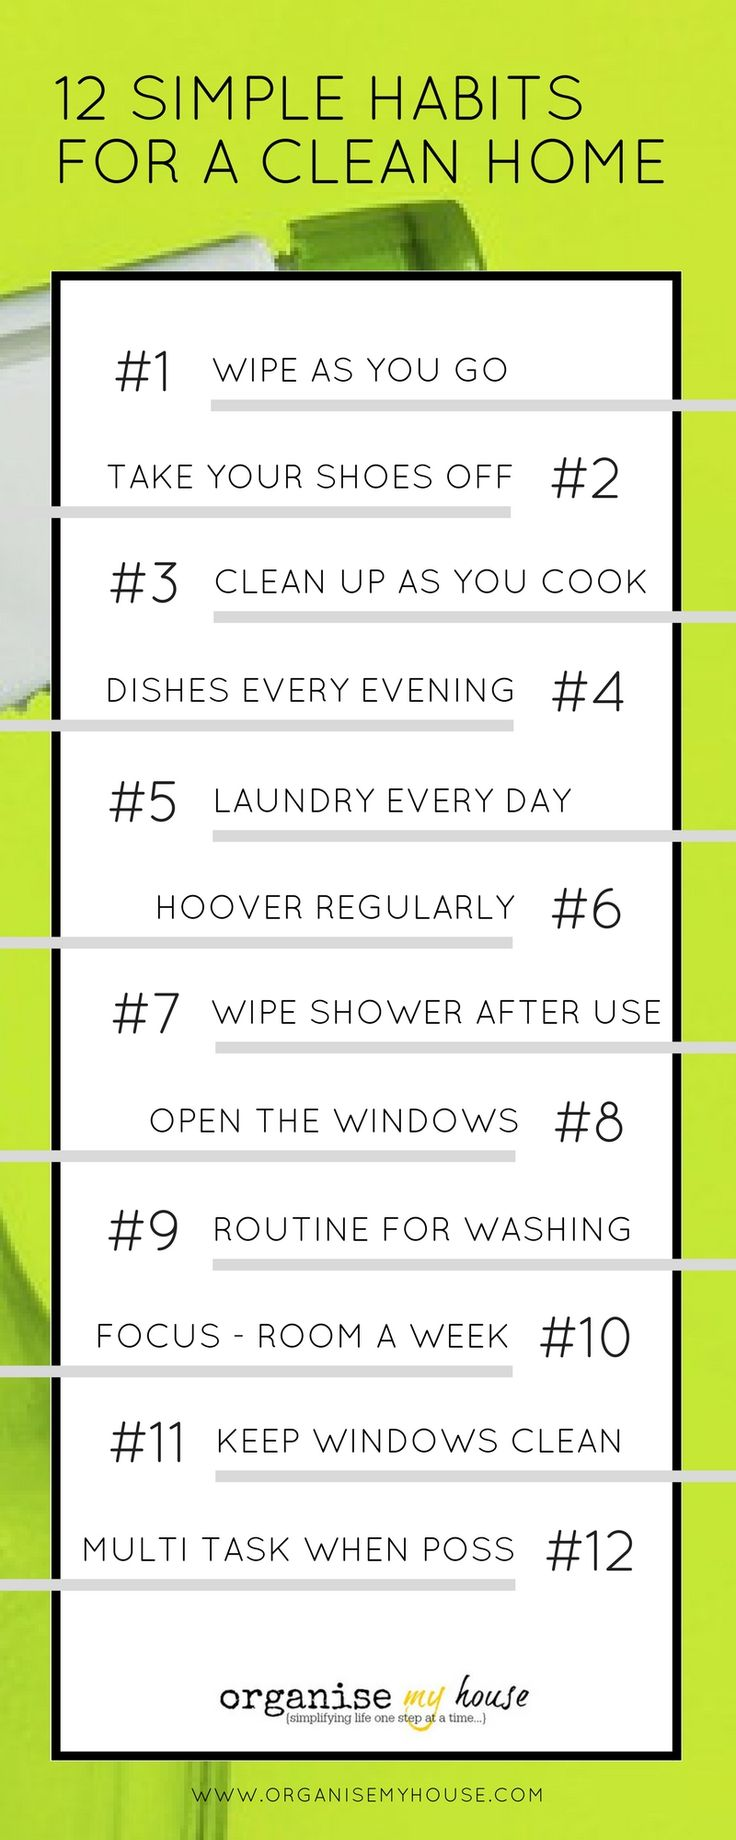 12 simple habits to try if you want a clean home. These are the habits that people use to ensure they have a clean home at all times - with ease. Find out the tricks right here!